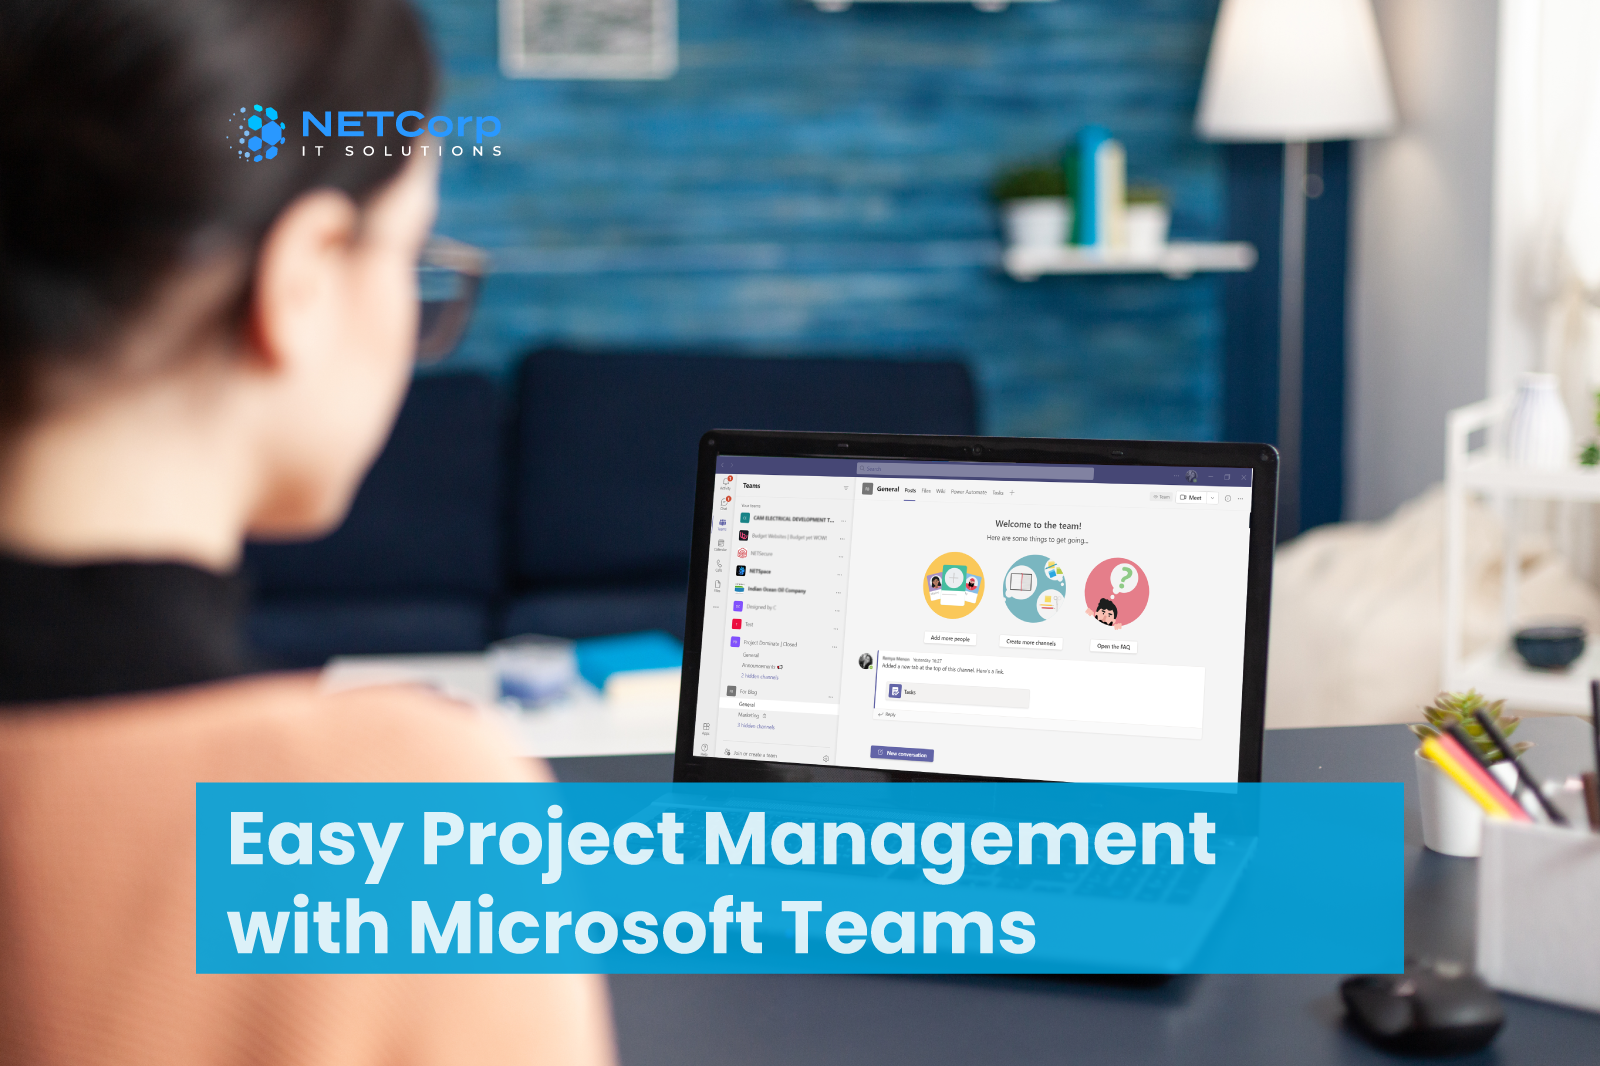 How To Use Microsoft Teams For Project Management By Small Business 1600x800 2